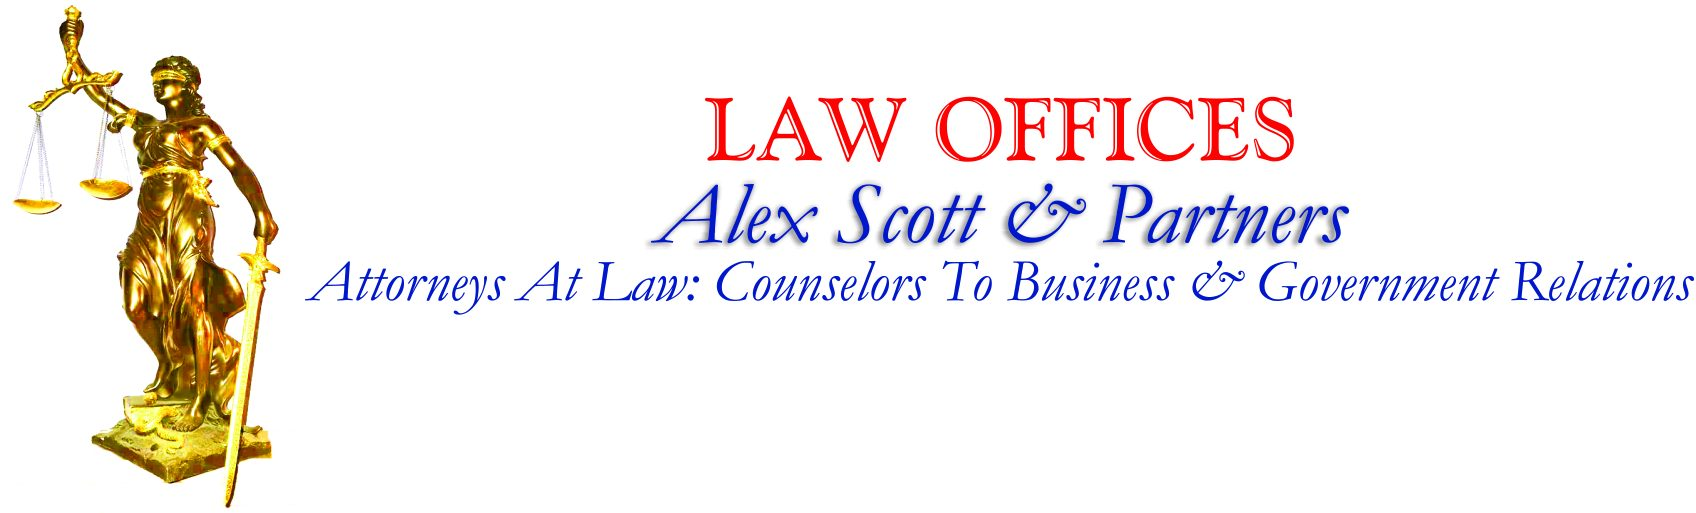 LAW OFFICES: ALEX SCOTT & PARTNERS